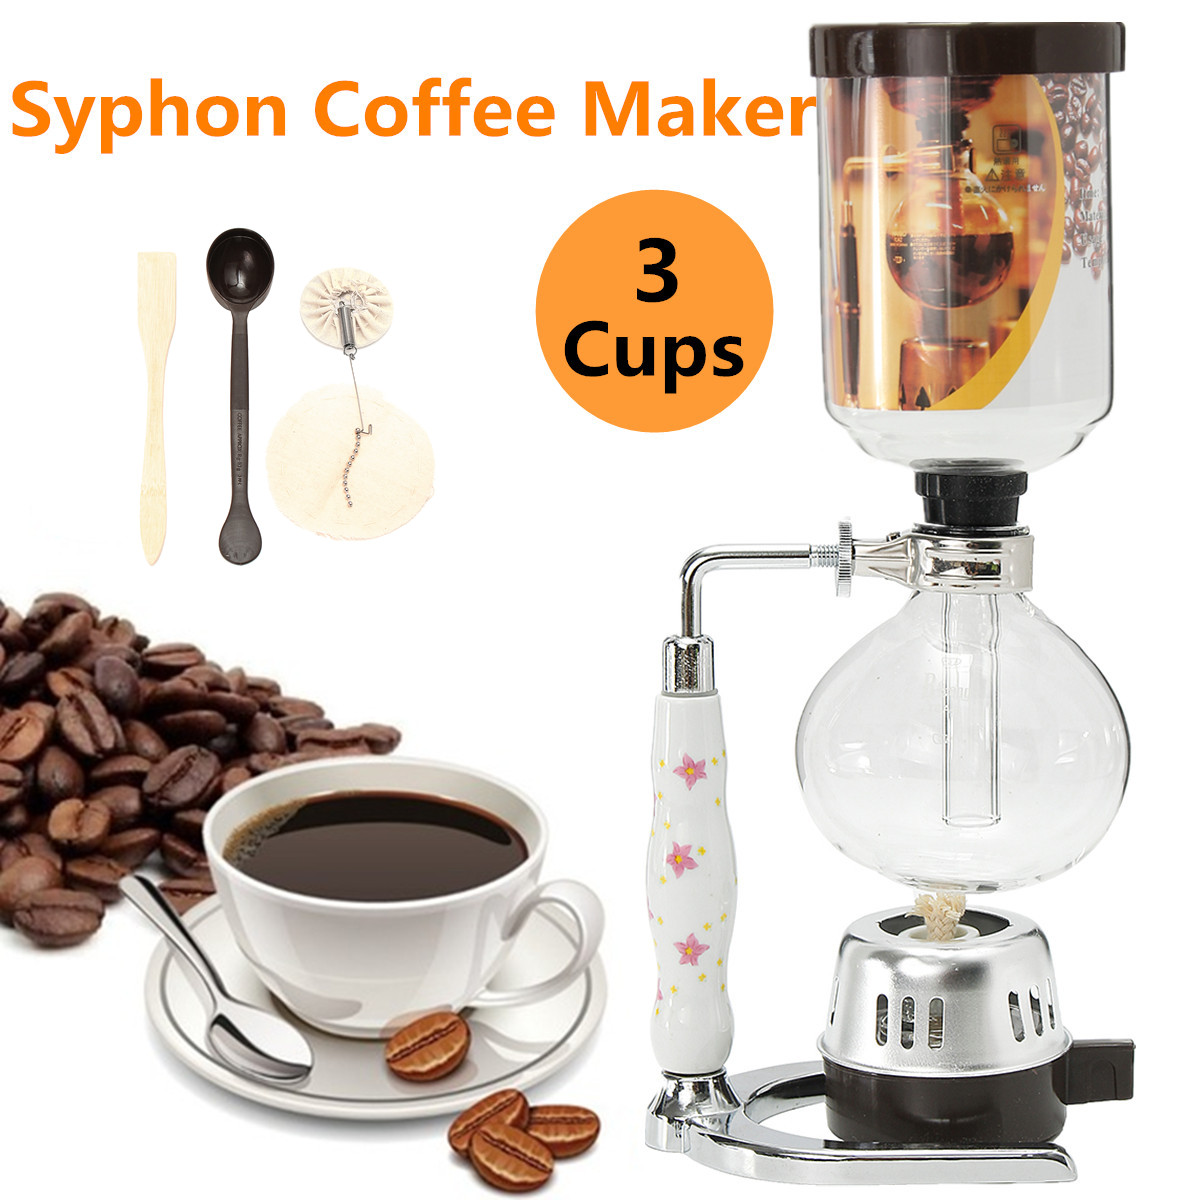 3 Cups Glass Syphon Coffee Maker Machine Brewer Siphon Vacuum Pot Filter Bottle Coffee Tools